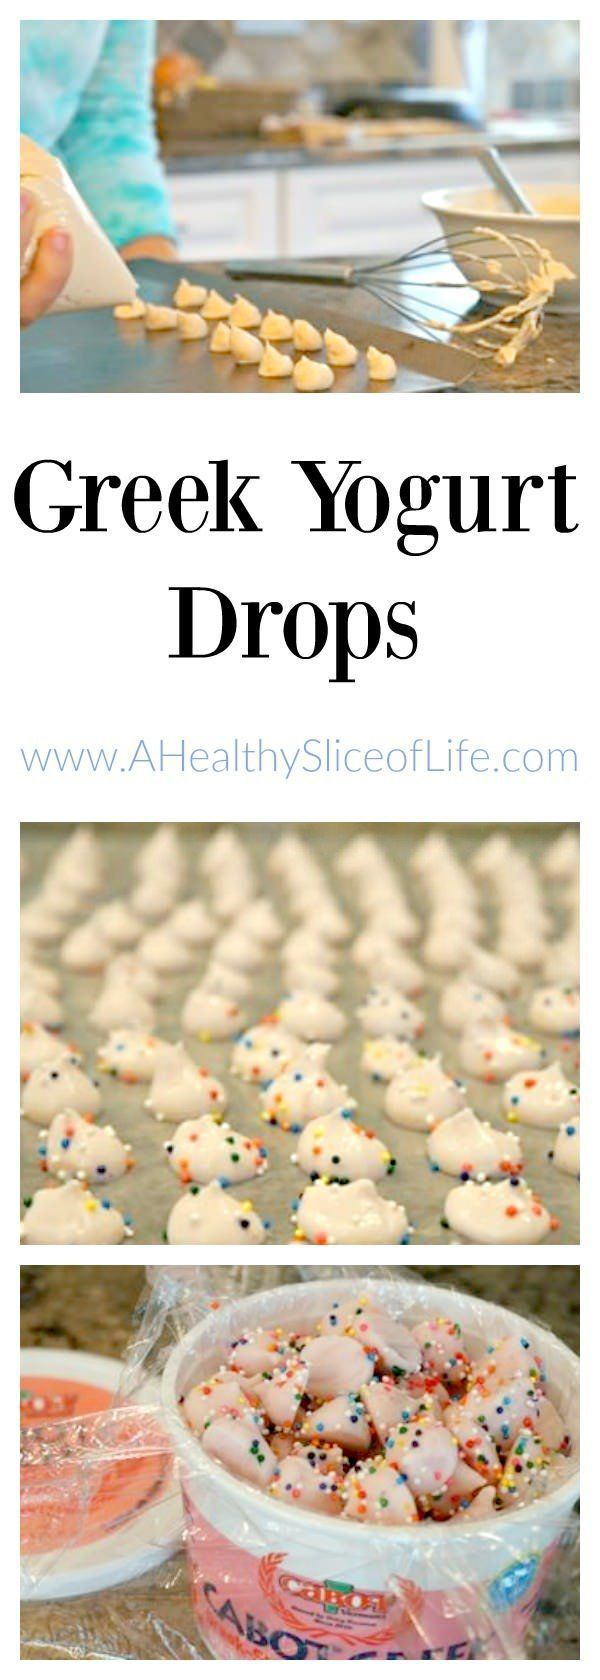 DIY Greek Yogurt Drops recipe for Kids (young and old). Frozen Greek yogurt drops! I made them Thursday morning on my Thinking Outside the Lunchbox segment on FOX News Rising. These kid-friendly Frozen Greek Yogurt drops are great for kids of all ages, from baby led weaing to toddler snacks and beyond, they are a healthy, delicious treat!